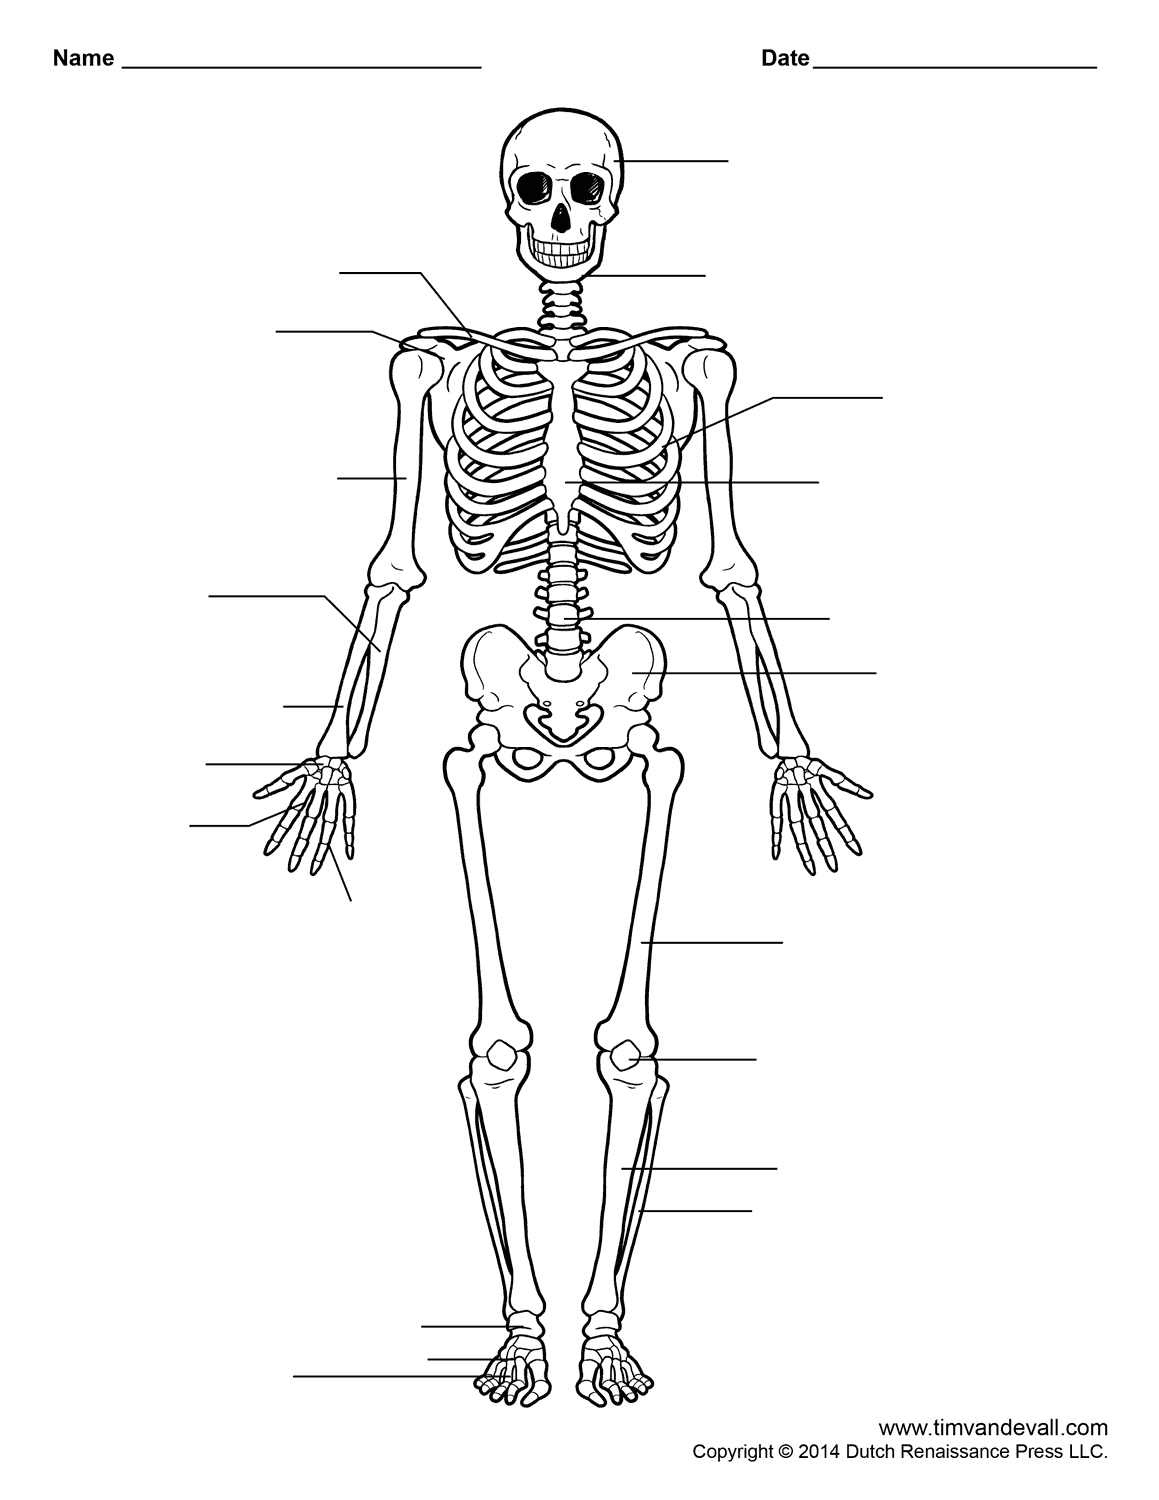 Human Skeleton Worksheet | Homeschool-Science | Human Skeleton | Free Printable Human Anatomy Worksheets